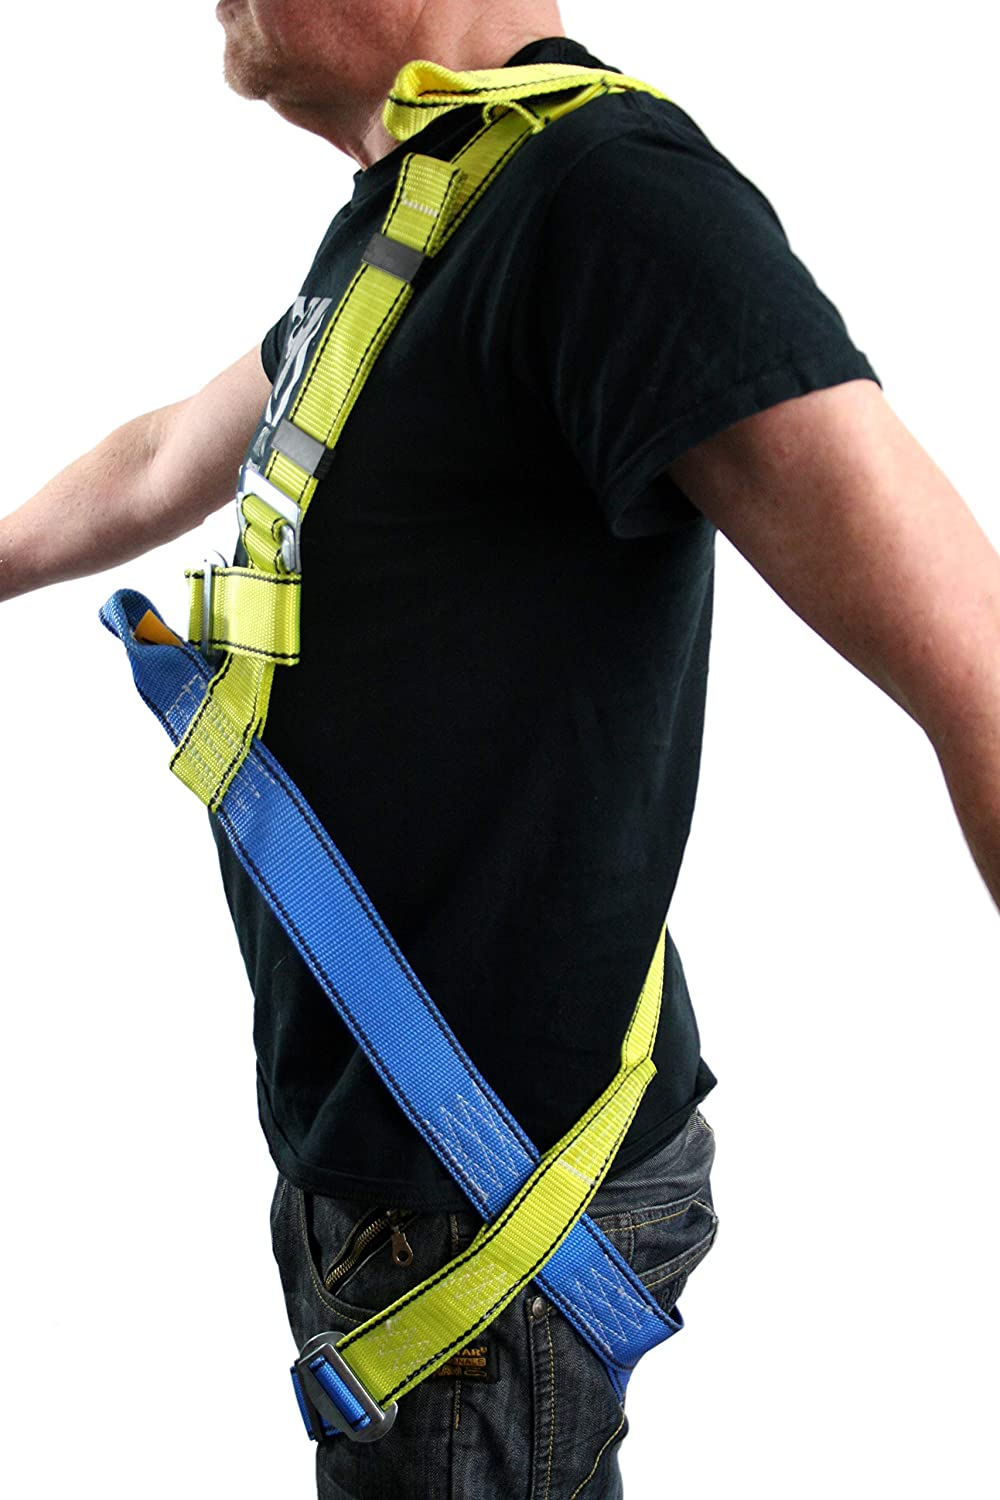 XXL G-Force 2 Point Full Body Height Safety Fall Arrest Protection Restraint Harness with Front /& Back Anchor Points